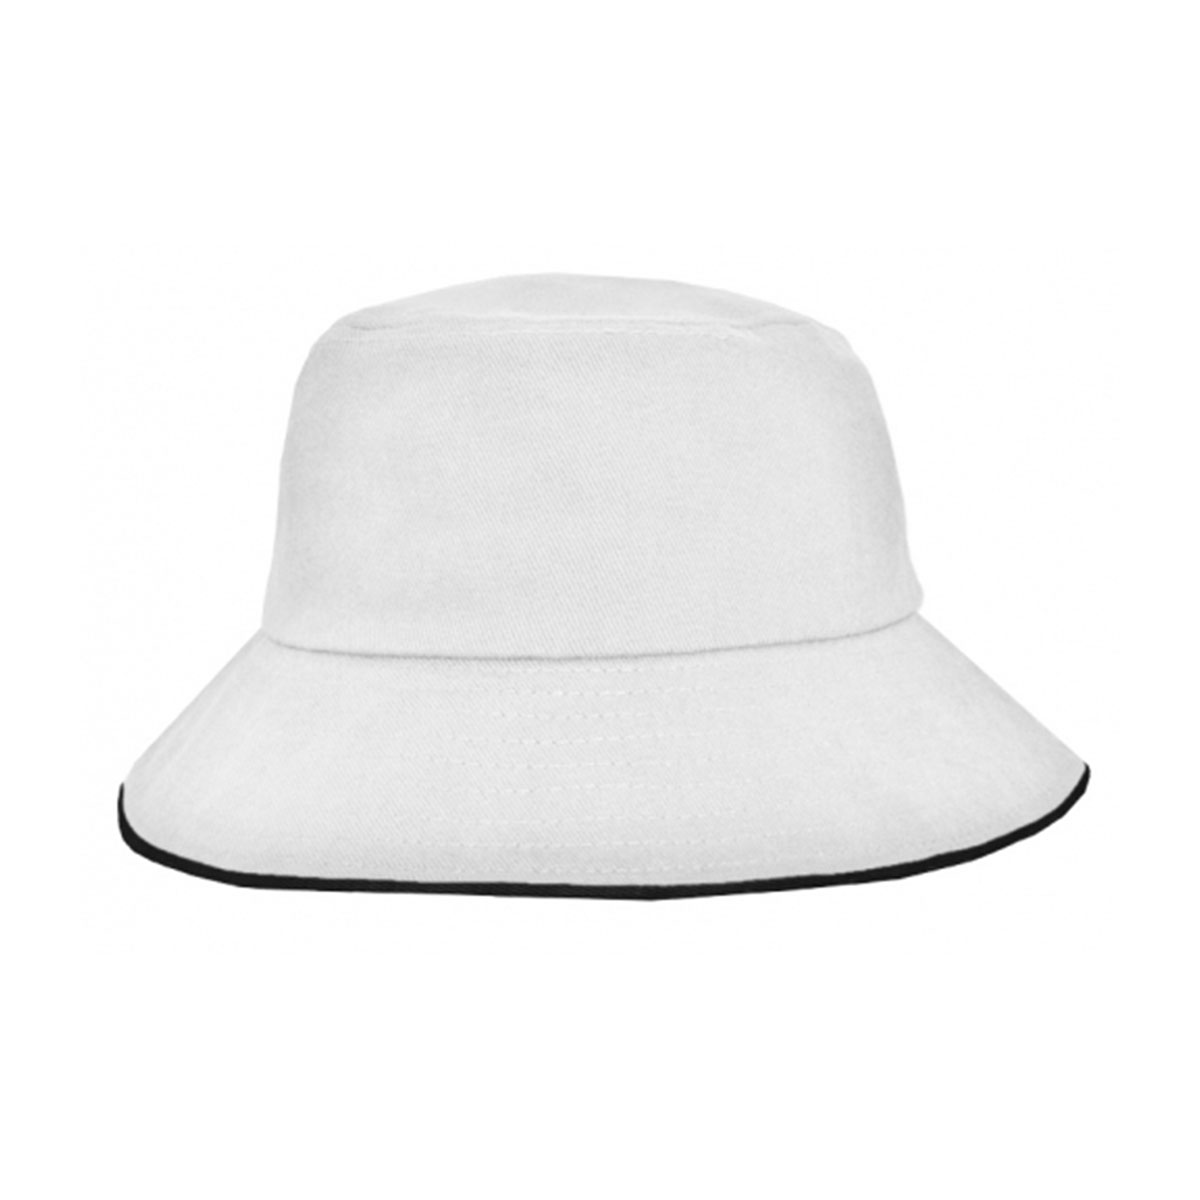 Bucket Hat Sandwich Design-White / Black